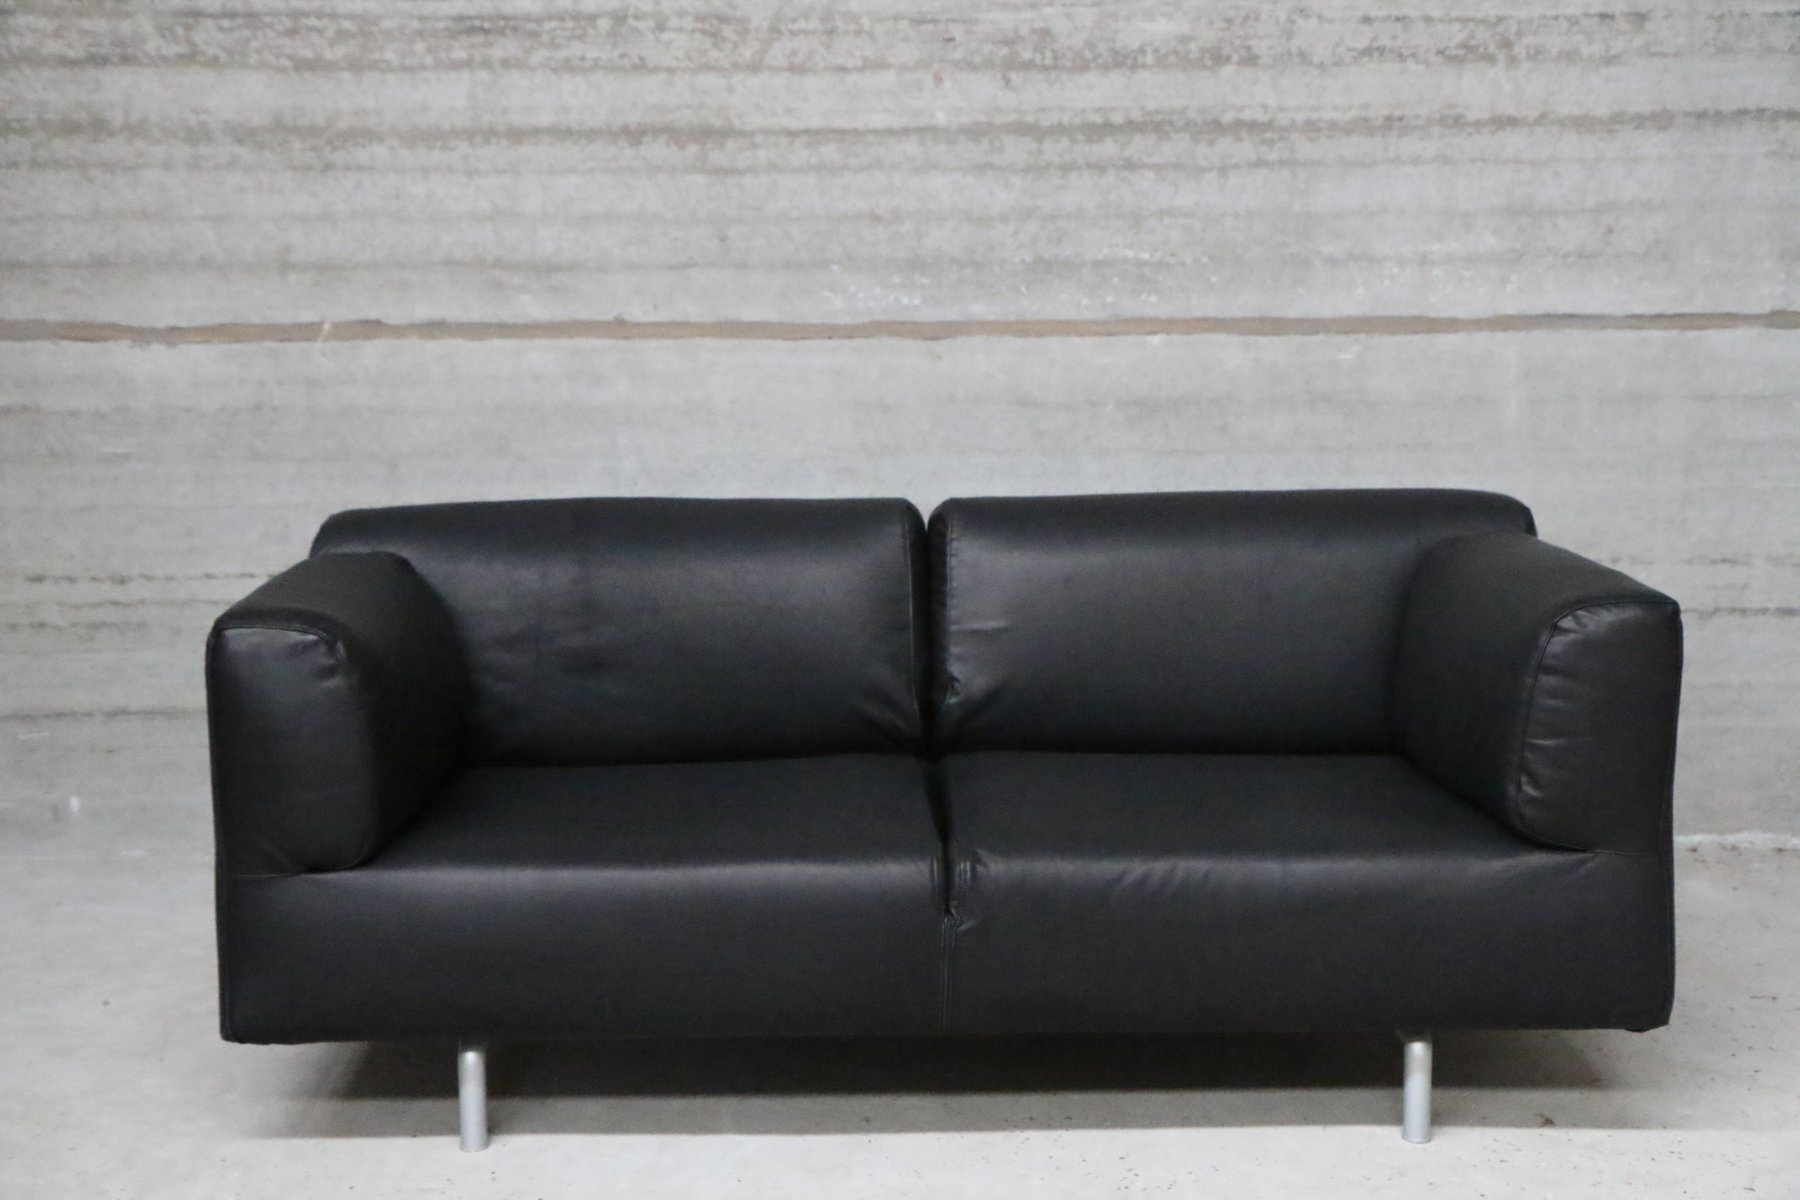 Vintage 250MET Sofa By Piero Lissoni For Cassina For Sale